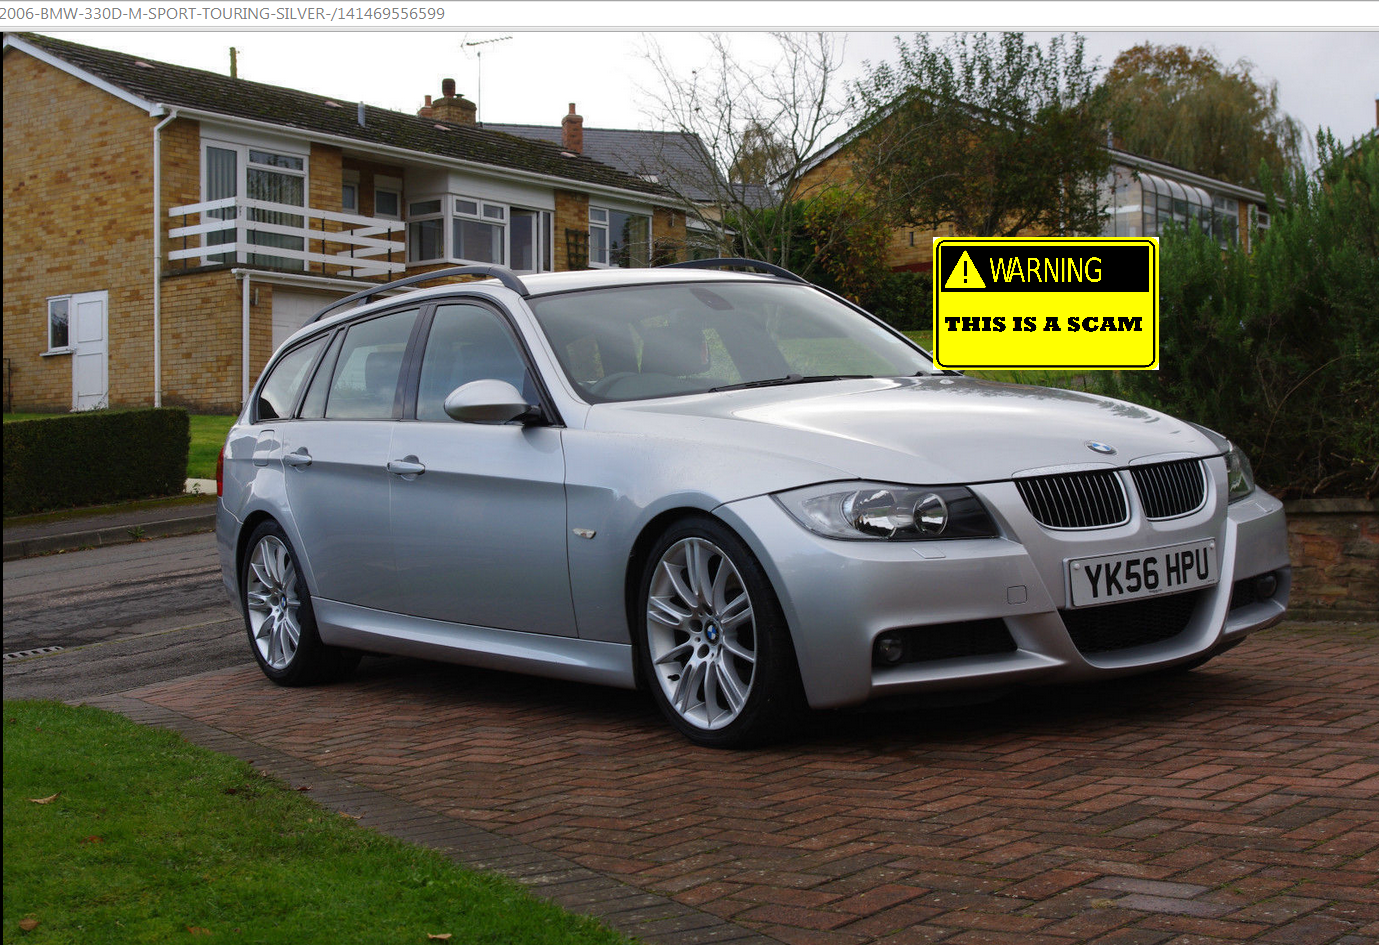 scam 2006 bmw 330d m sport touring silver yk56hpu ebay fraud yk56 hpu 12 nov 14. Black Bedroom Furniture Sets. Home Design Ideas